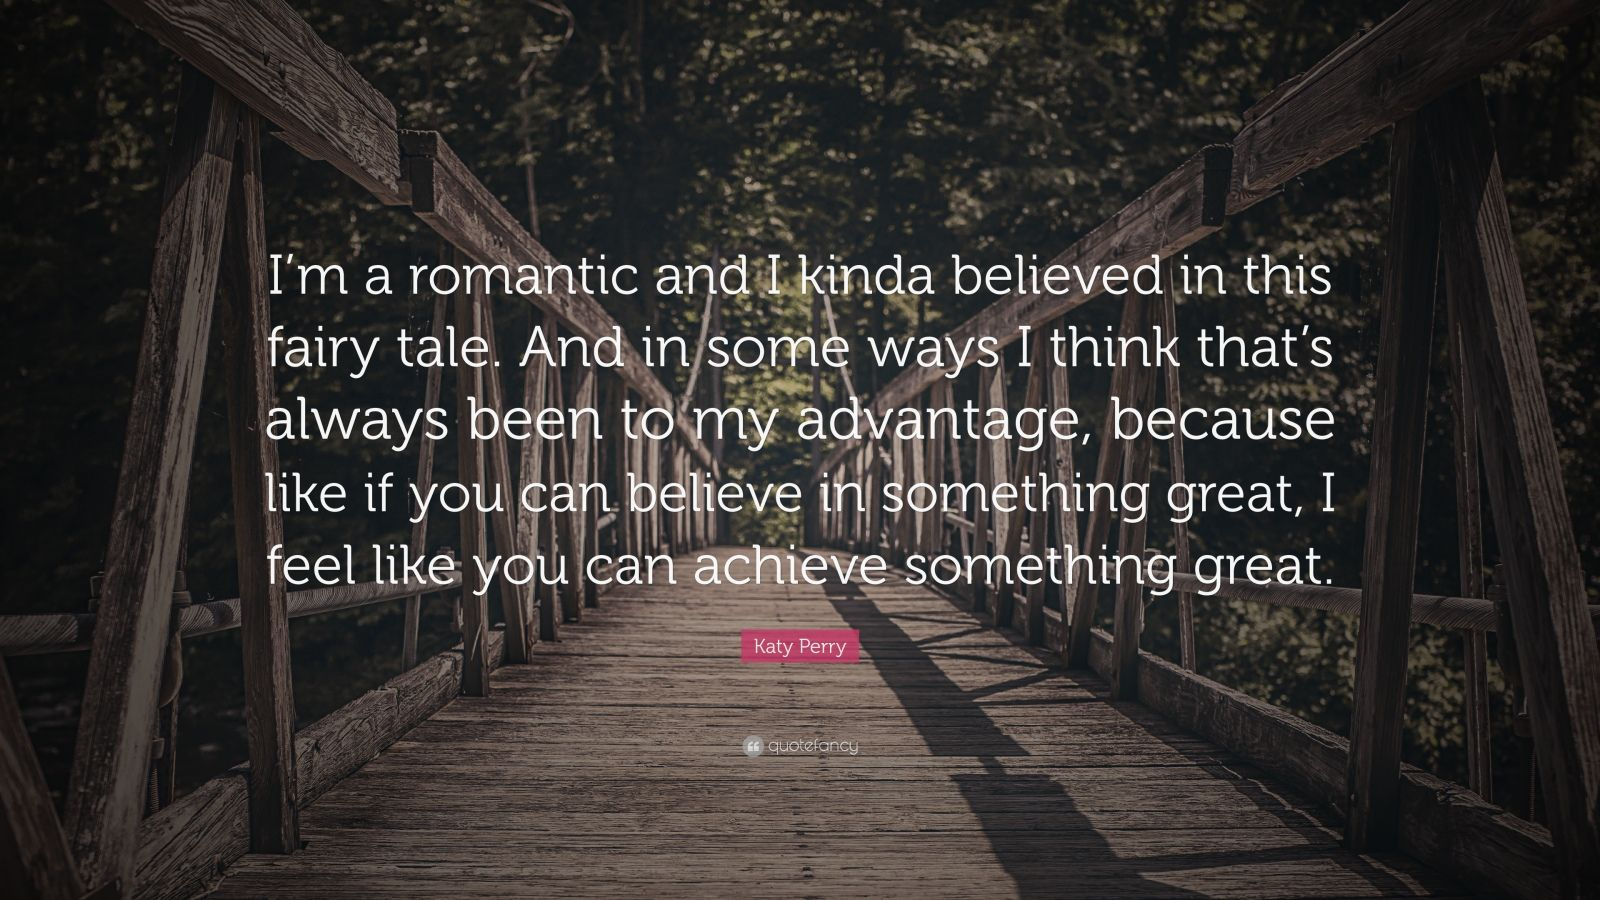 """Katy Perry Quote: """"I'm a romantic and I kinda believed in this fairy tale. And in some ways I think that's always been to my advantage, because like if you can believe in something great, I feel like you can achieve something great."""""""